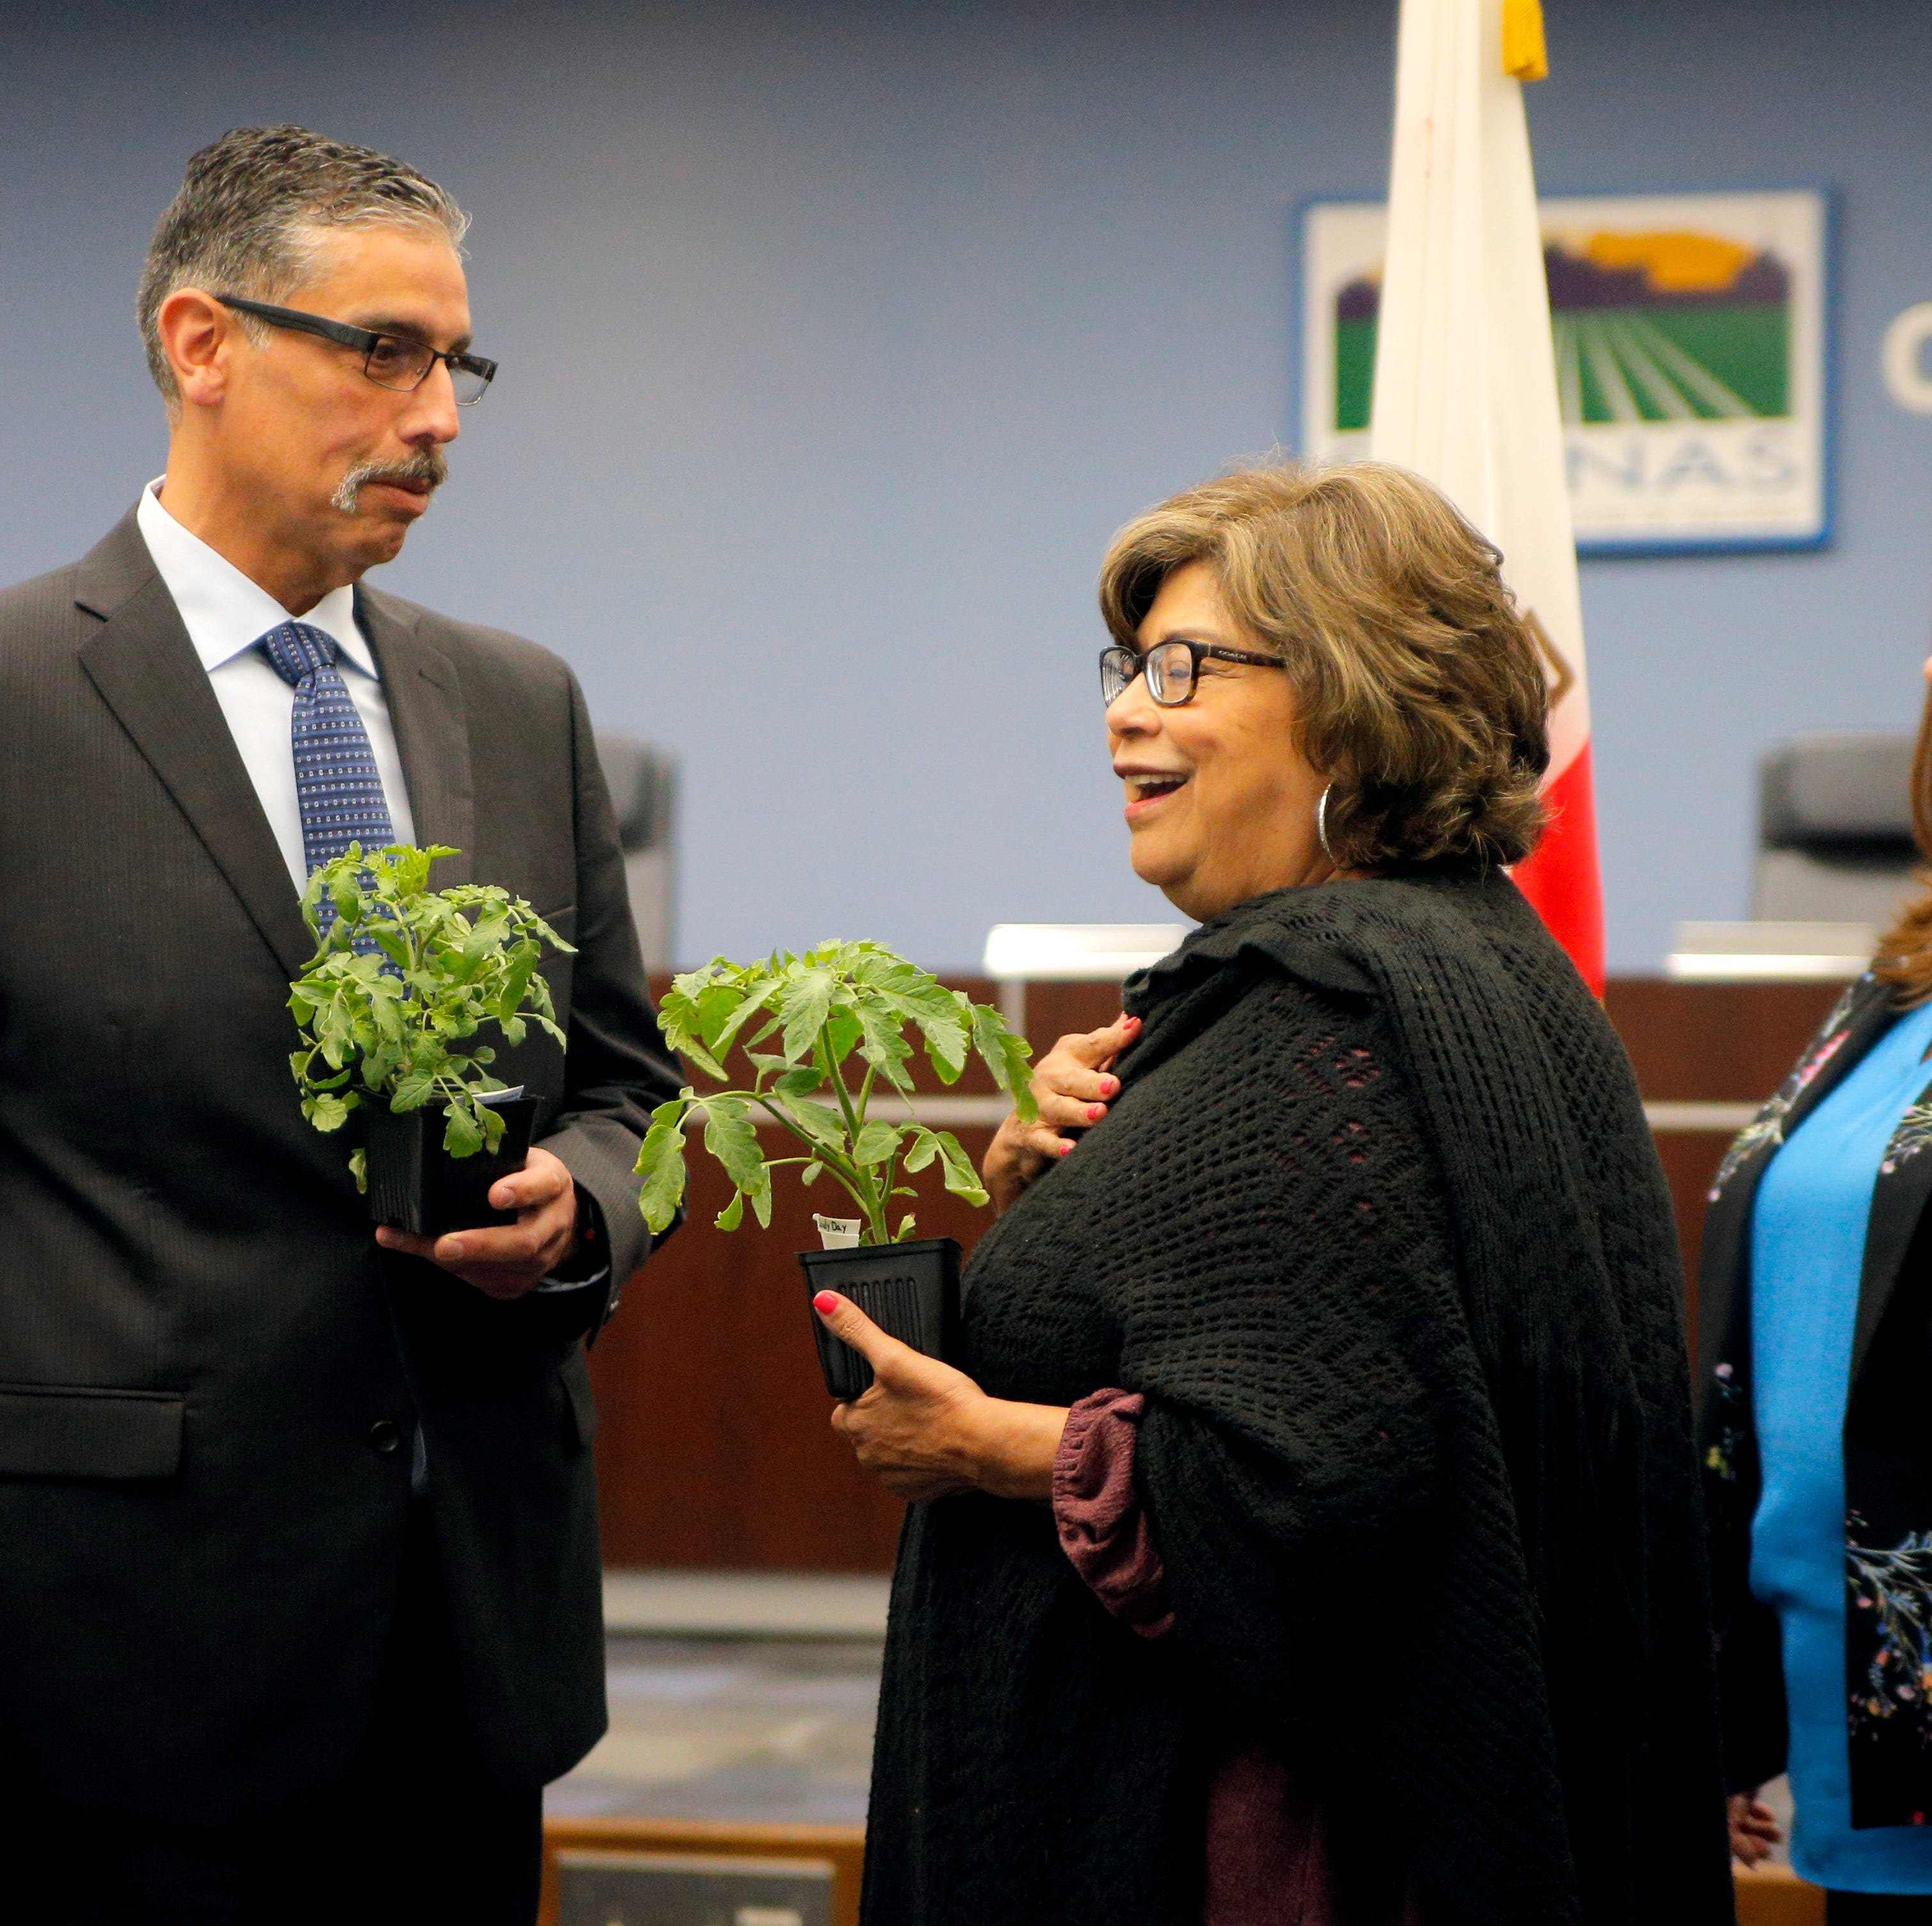 Salinas welcomes new fire chief with praise and plants